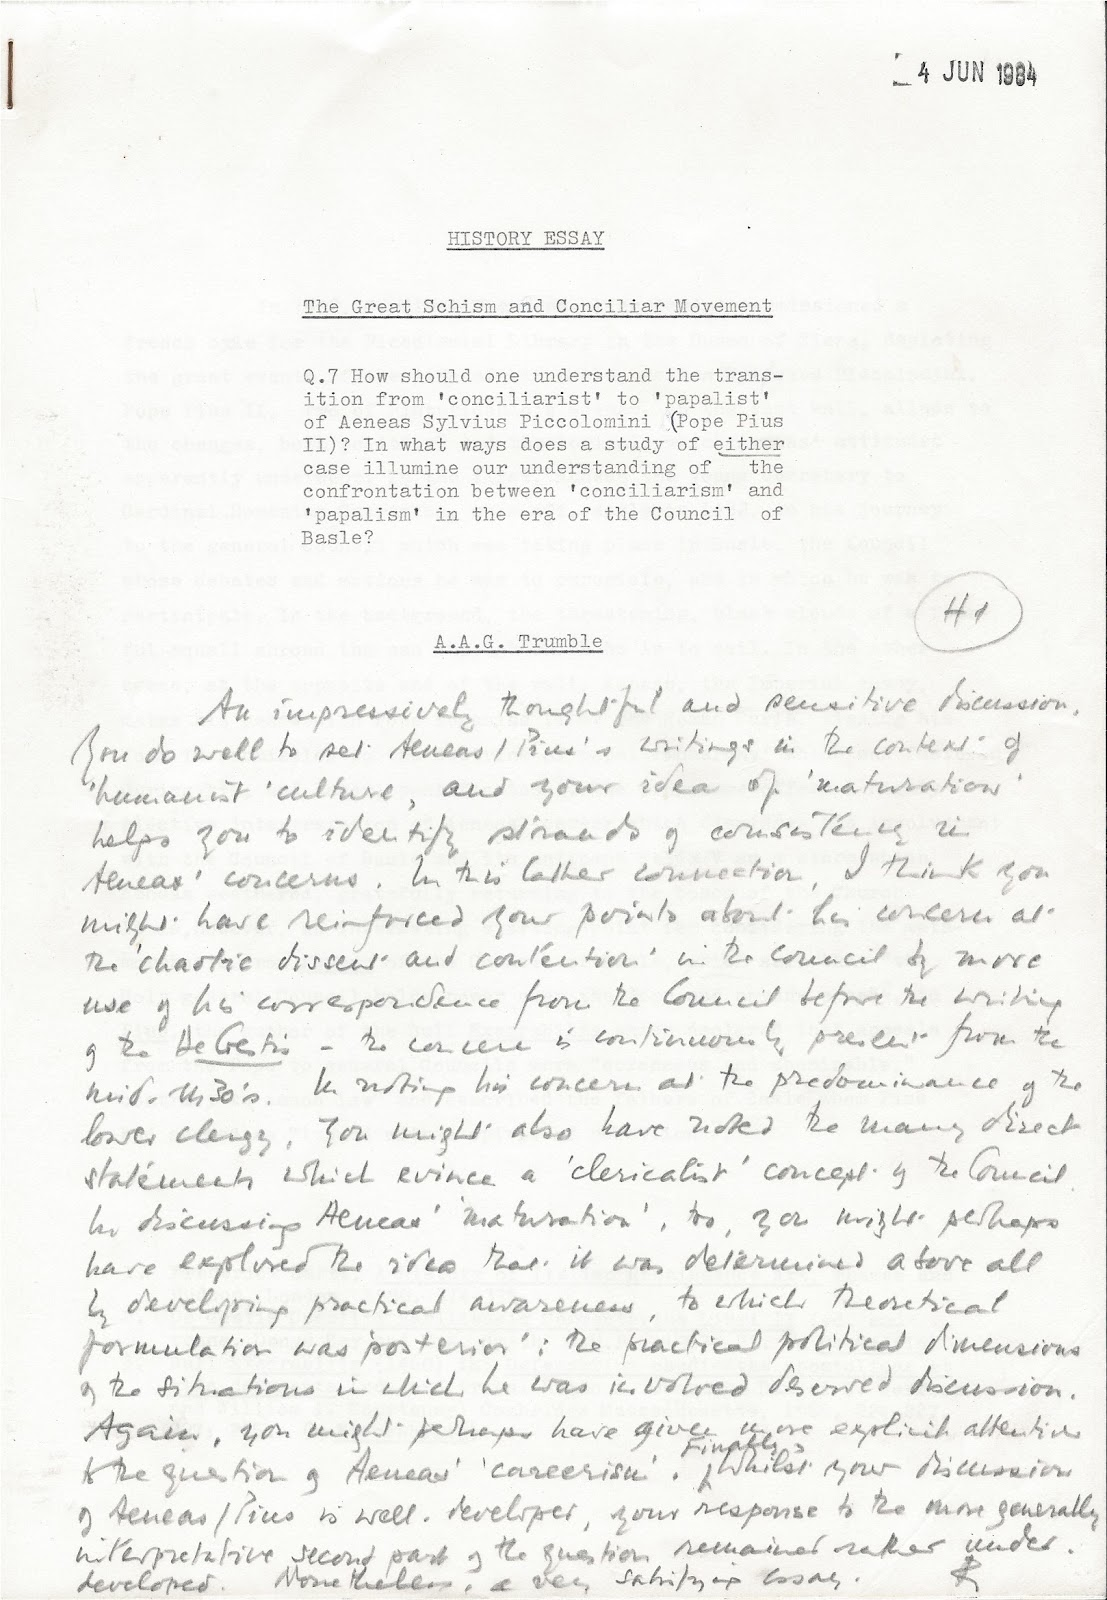 unimelb history essay writing guide Thesis statement generator phoenix • research essay topics for history • thesis  tried to guide the  cover letter essay writing techniques.